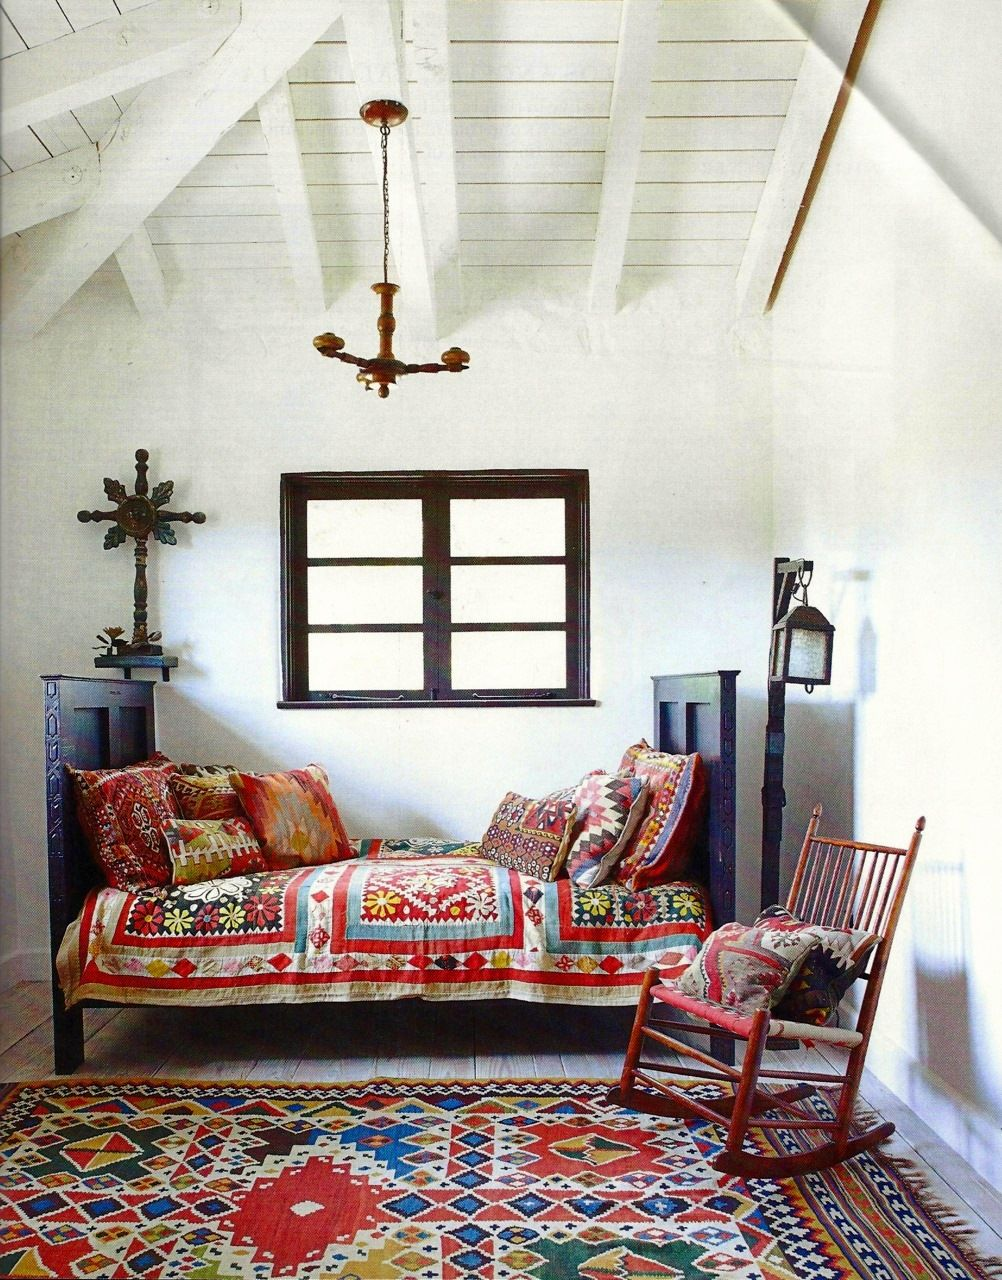 Boho loft bedroom  Loft space with Indian blanket pillows and rug  Boho girl